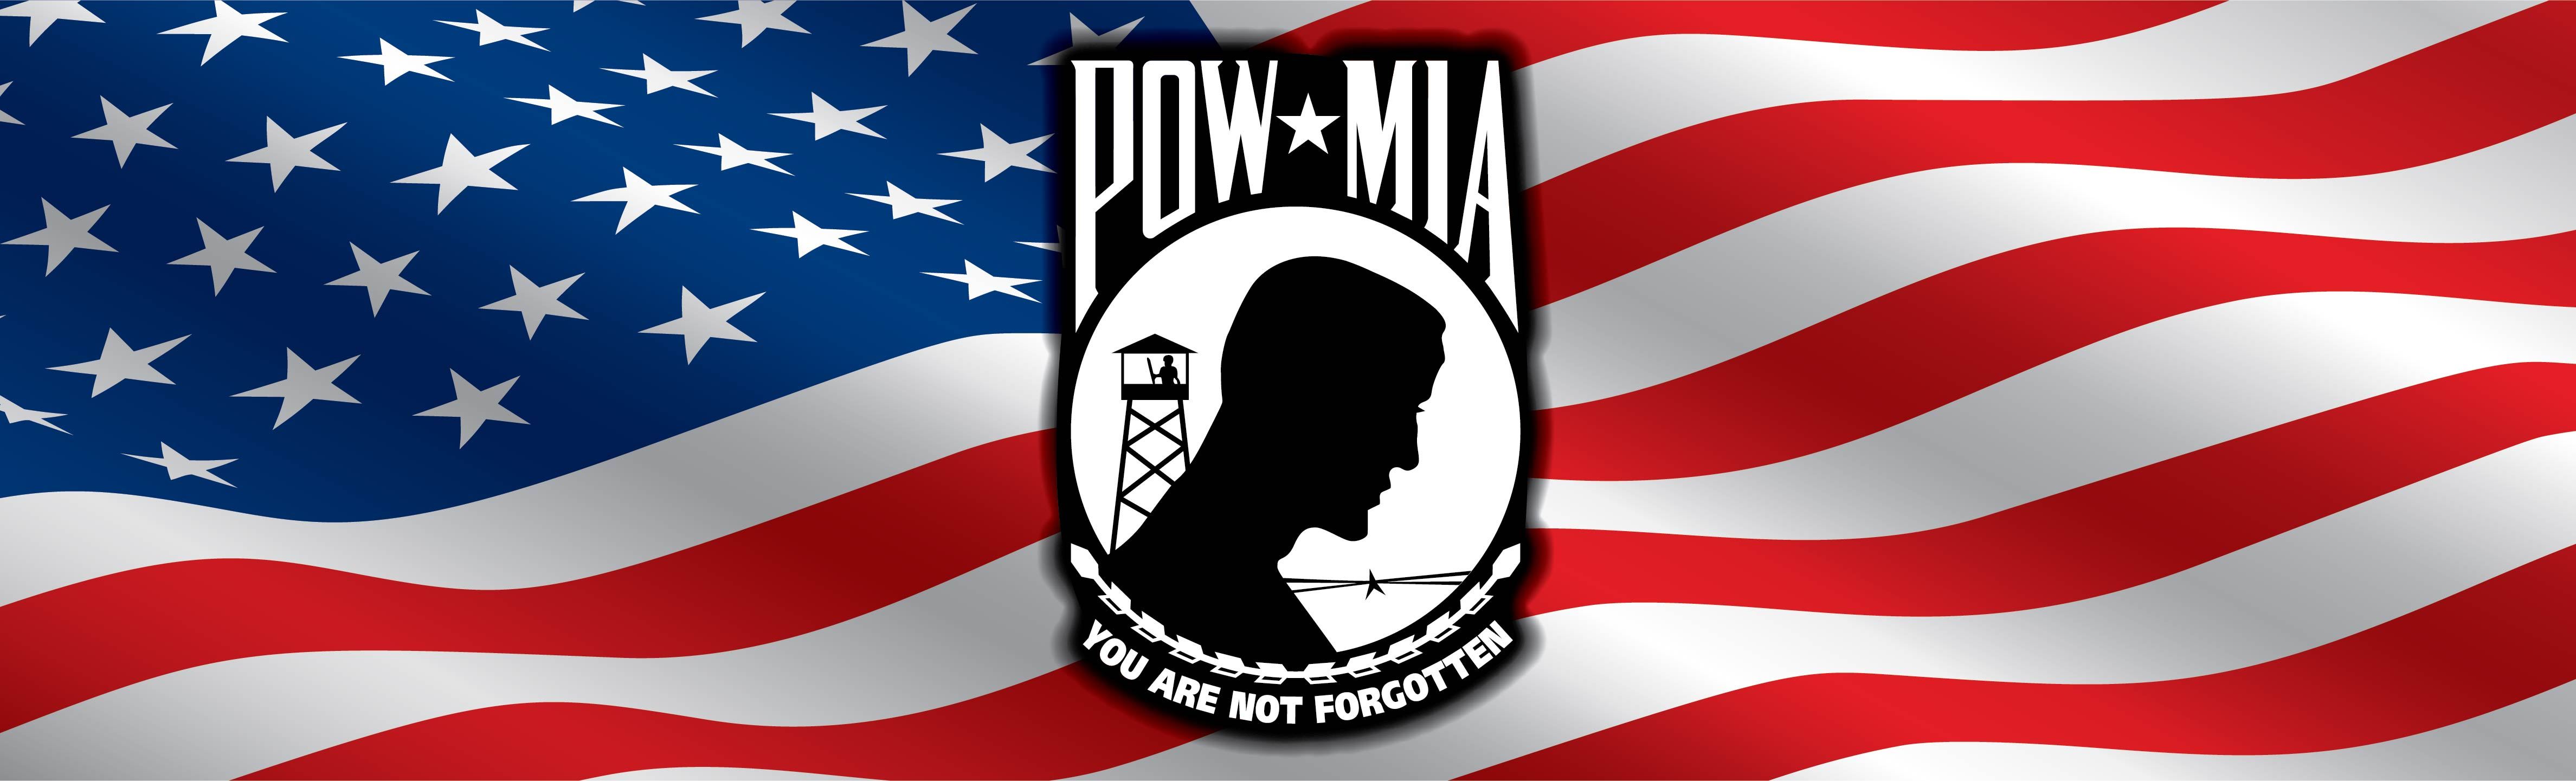 Pow mia american flag rear window graphic by adventure graphics